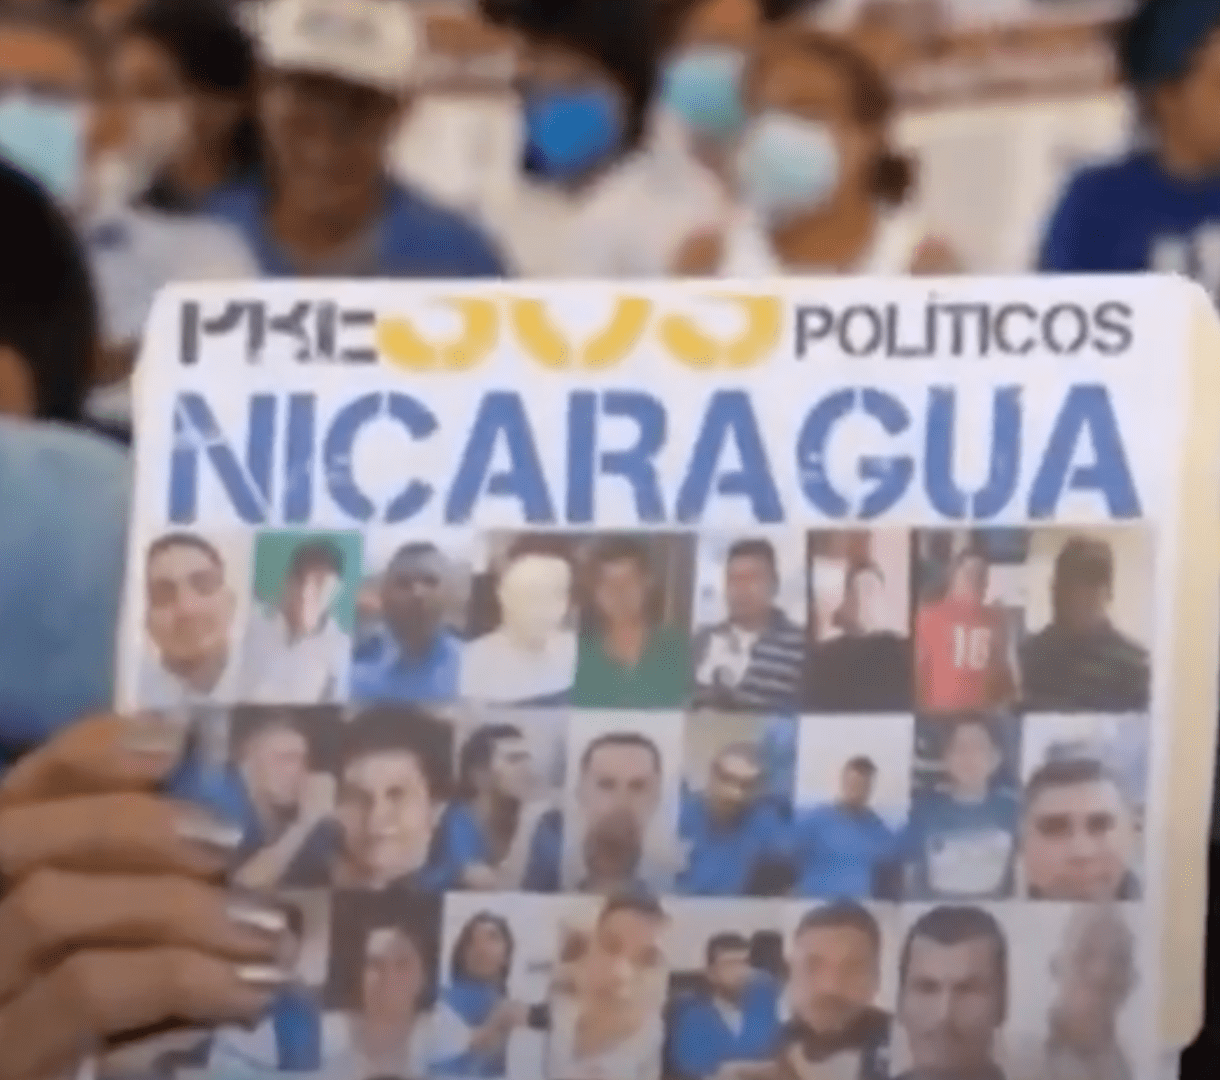 Preserving Human Rights in Nicaragua